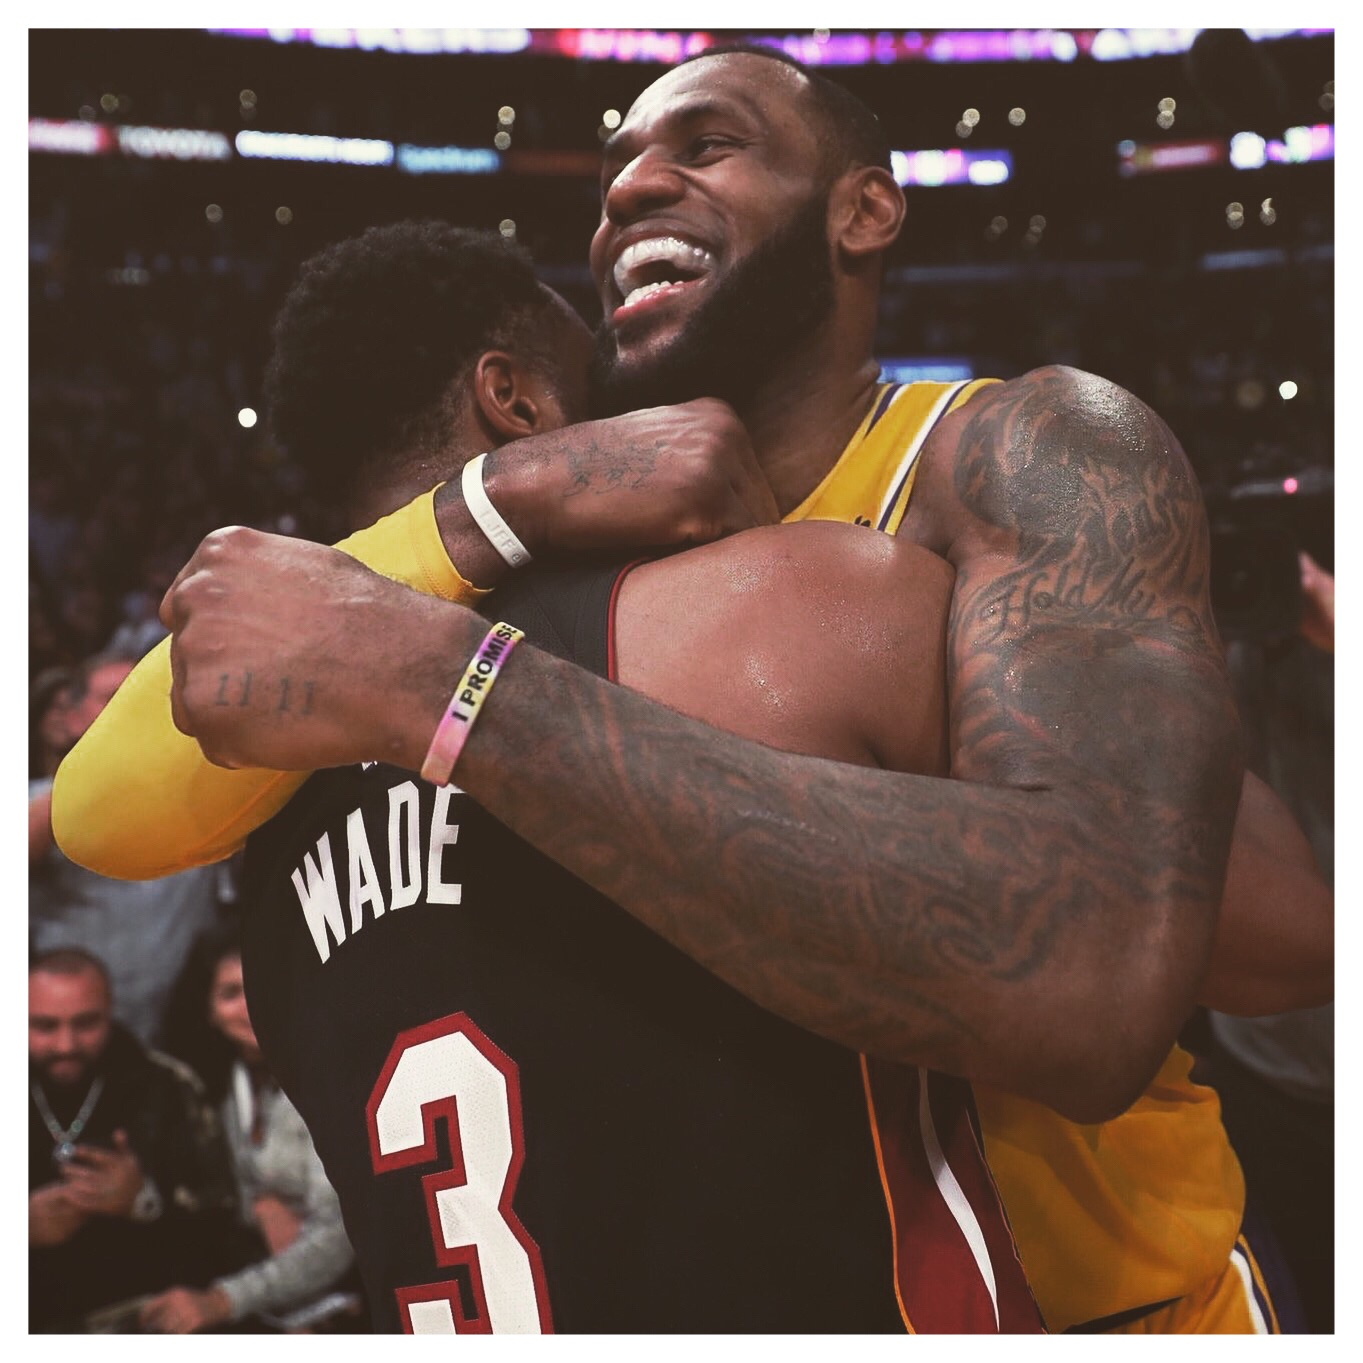 DWYANE WADE & LEBRON JAMES - FINAL MEETING BETWEEN THE TWO!